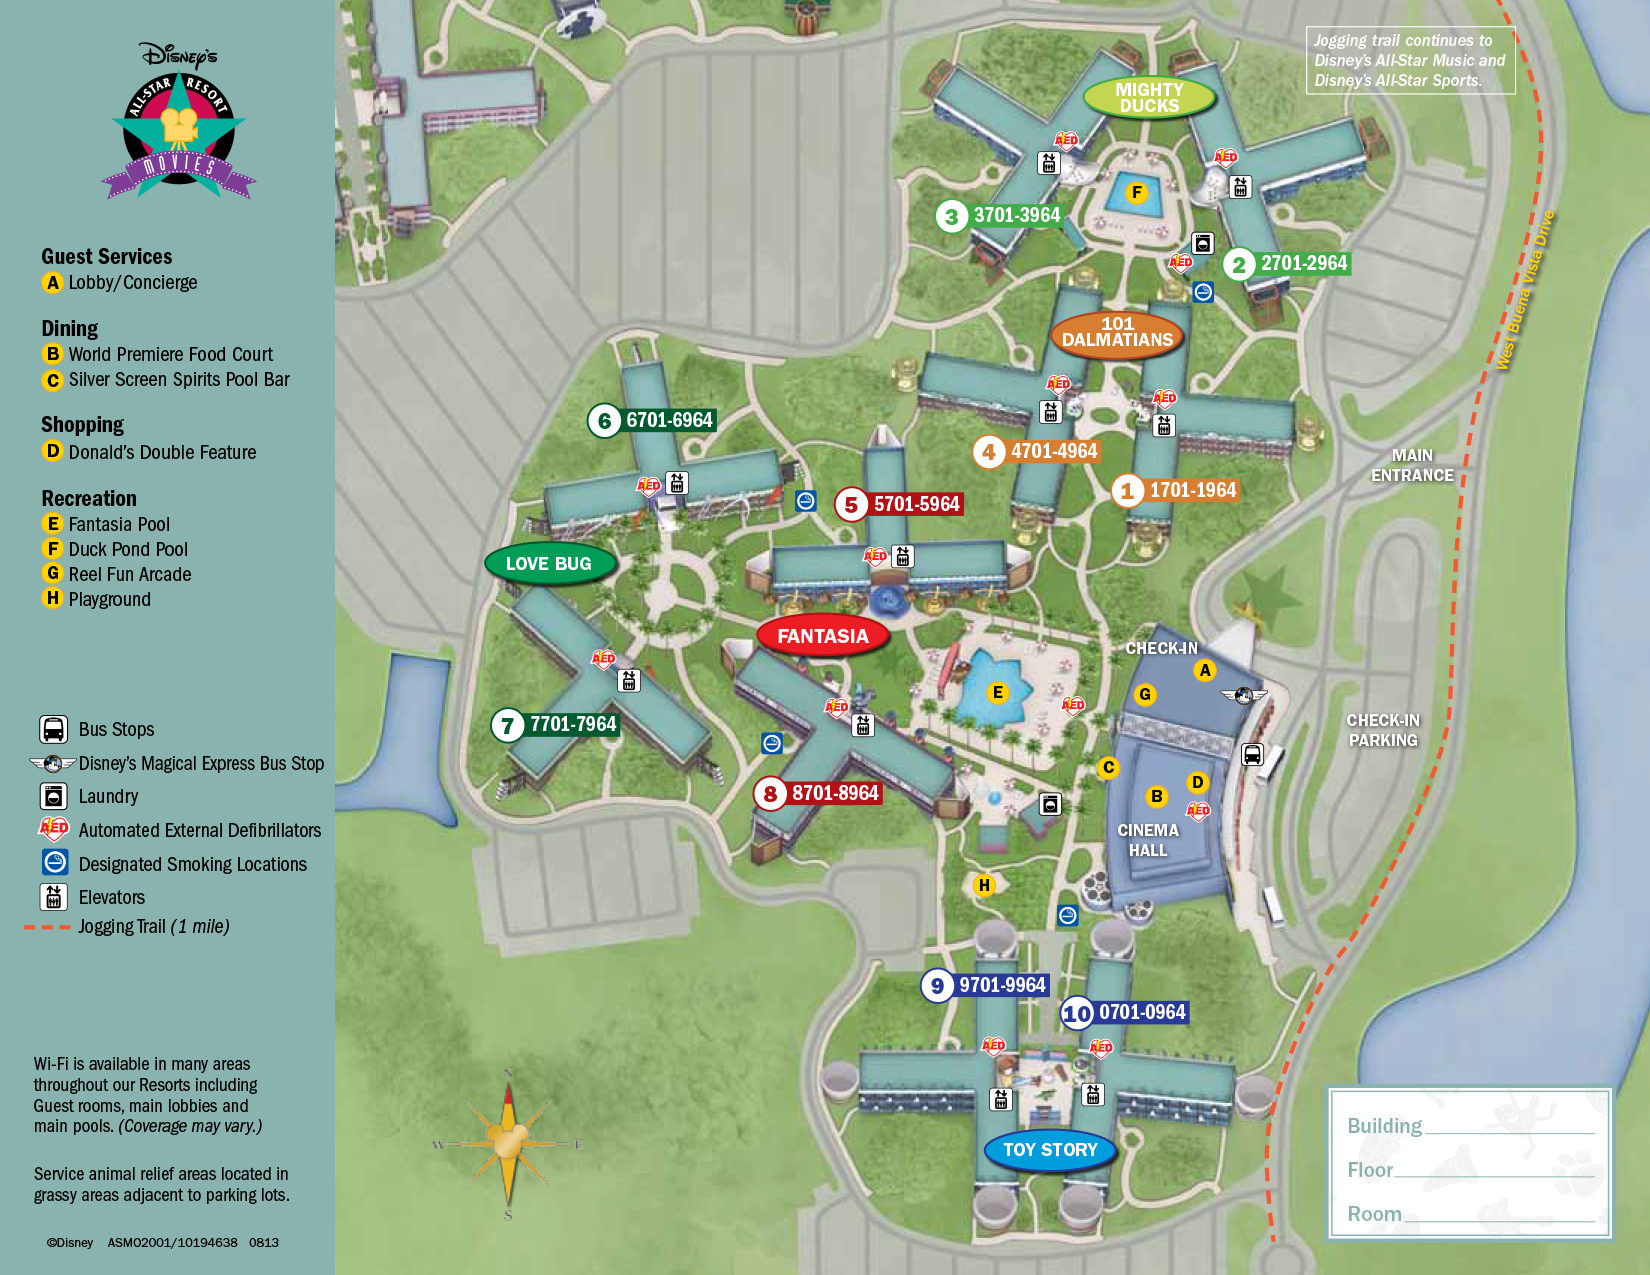 All Star Movies Resort Map Walt Disney World